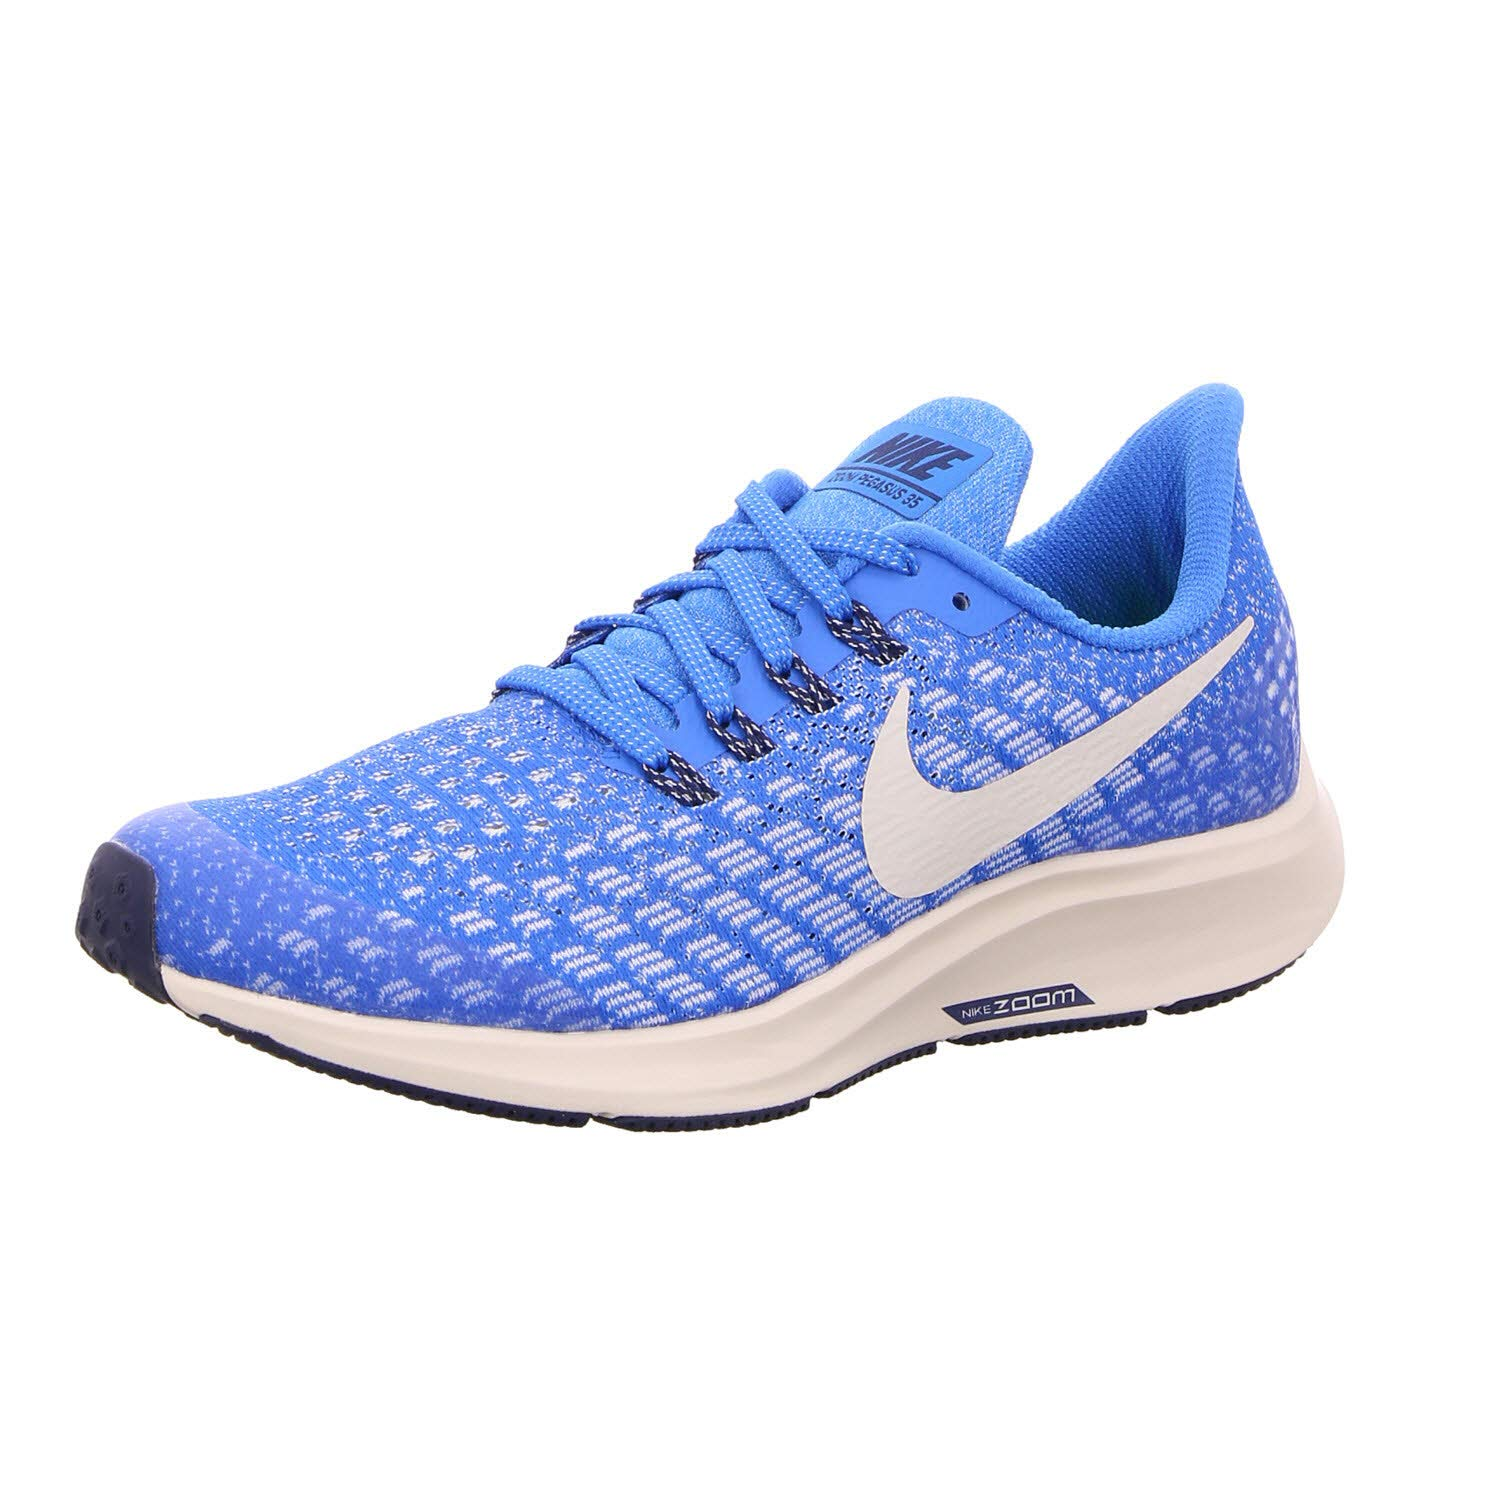 on sale 69f51 5196c Nike Boy's AIR Zoom Pegasus 35 (GS) Running Shoes